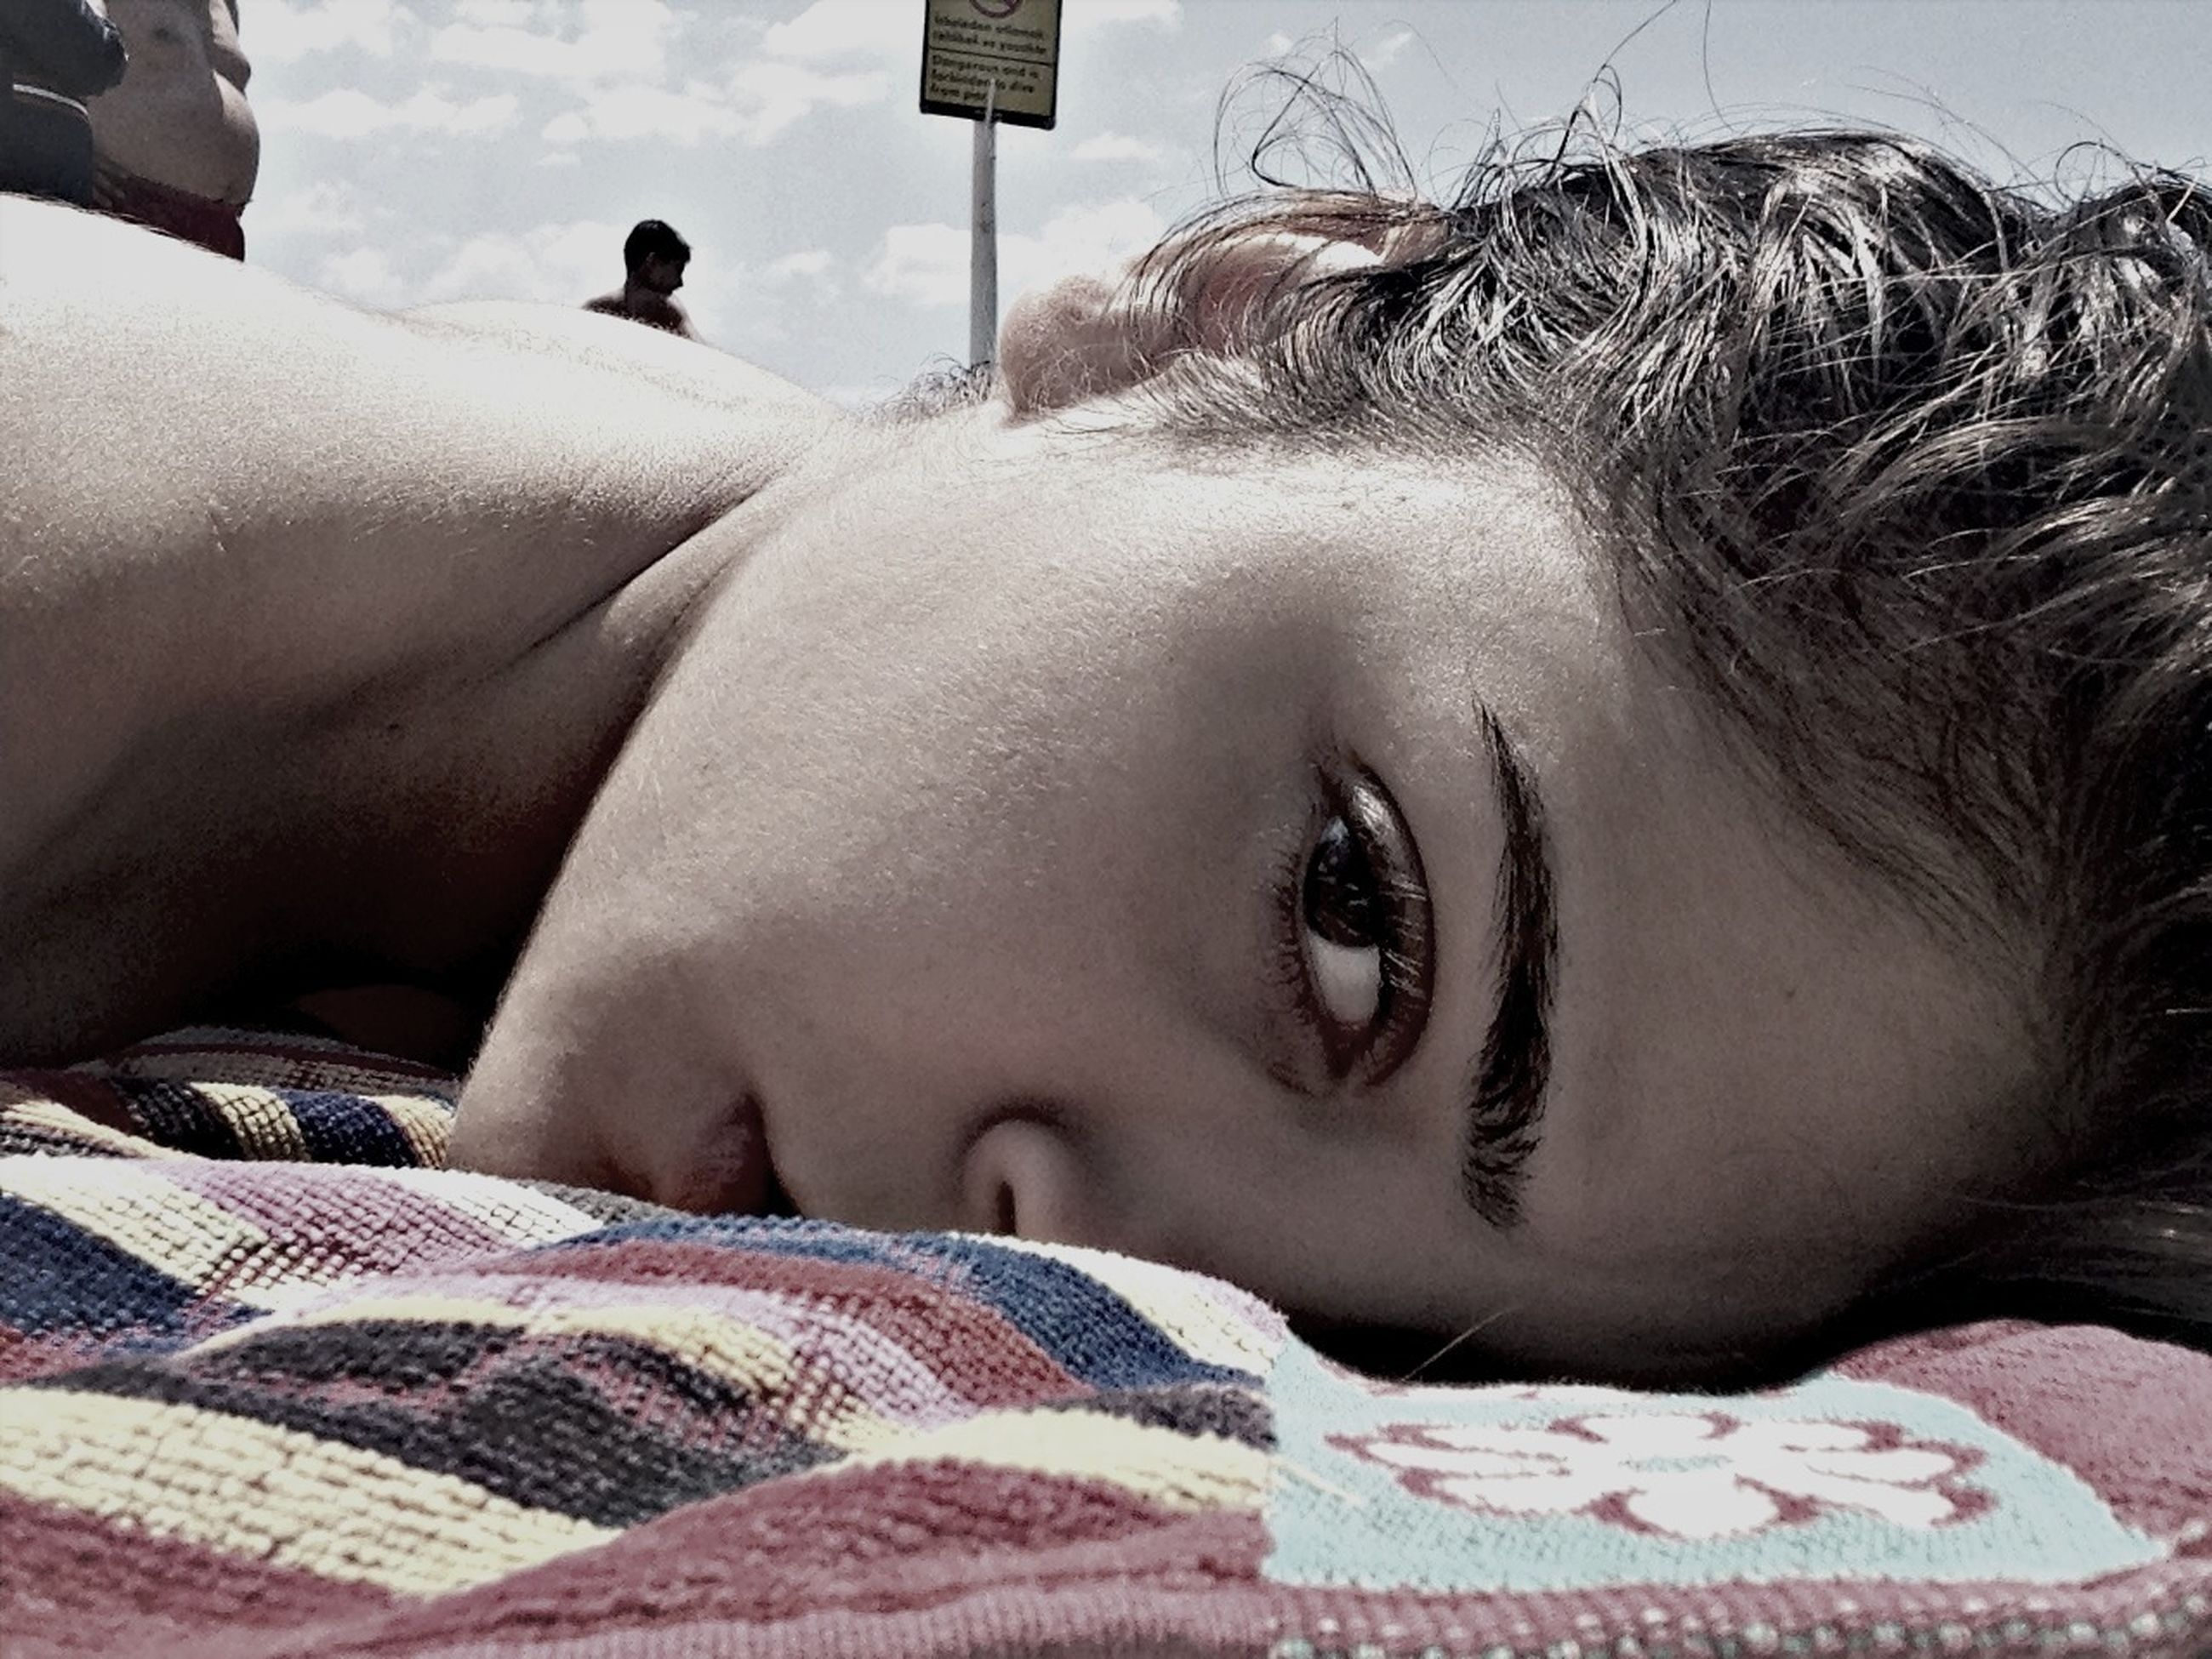 lifestyles, person, headshot, young adult, leisure activity, relaxation, young women, portrait, close-up, looking at camera, lying down, head and shoulders, resting, front view, childhood, human face, day